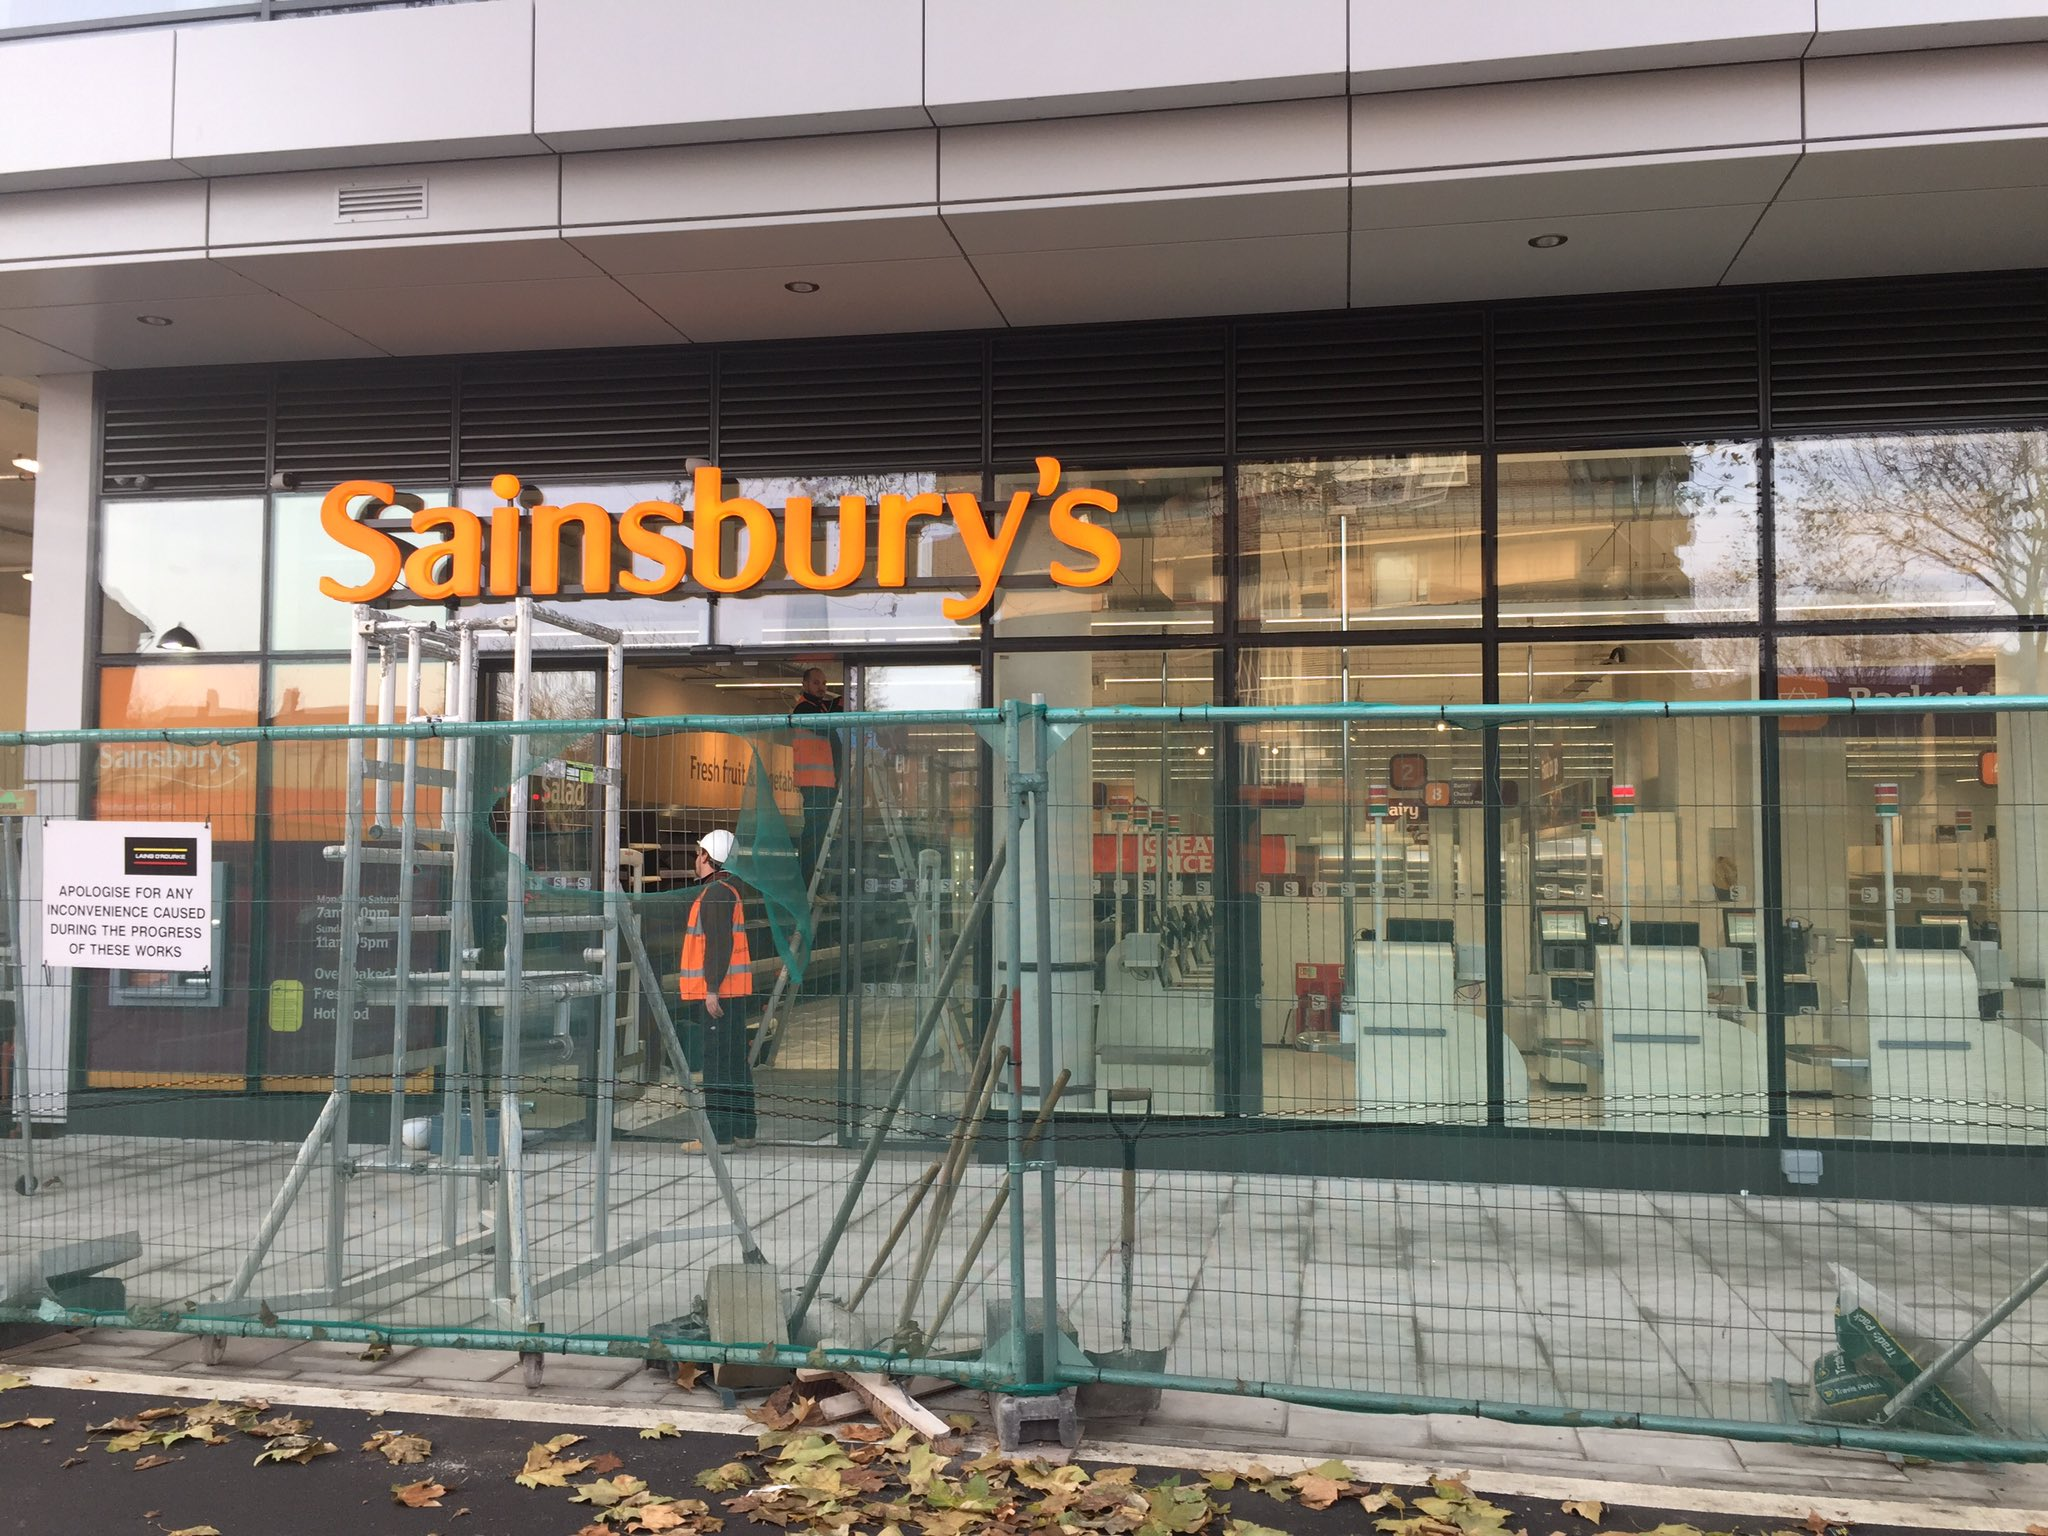 Sainsbury's delays Elephant & Castle store launch till January